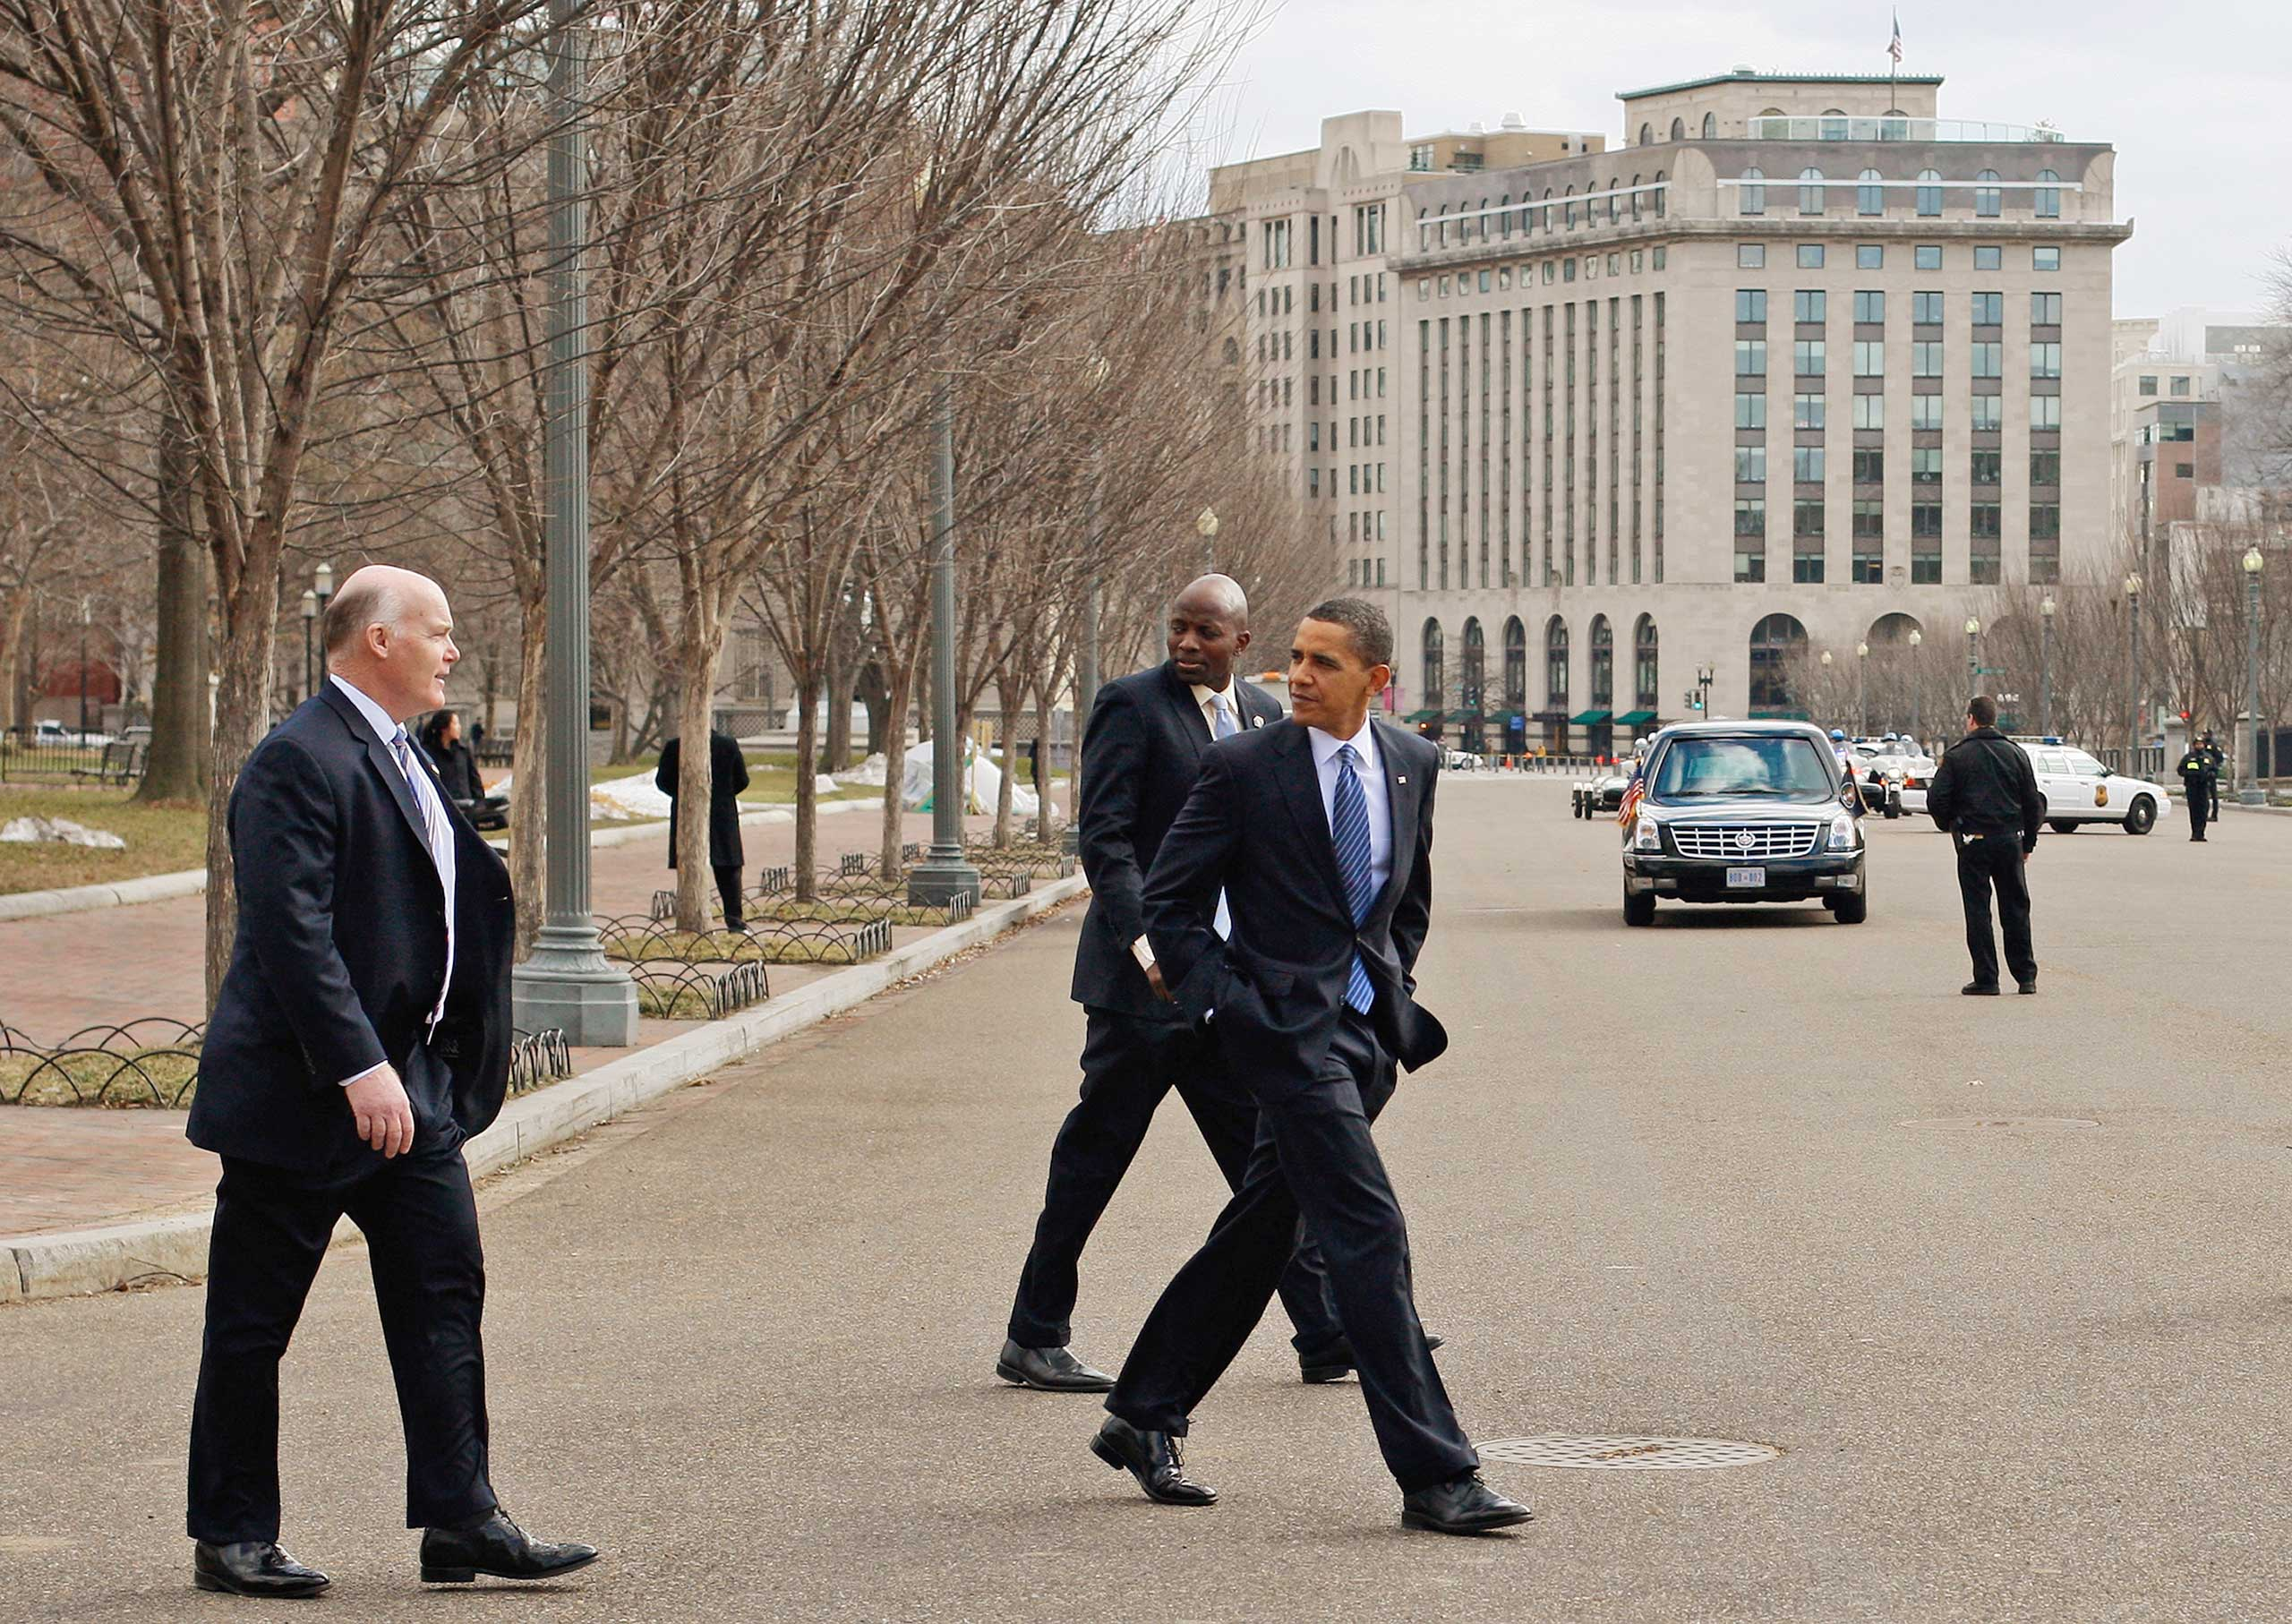 Clancy, left, crosses Pennsylvania Avenue with President Barack Obama, and Obama's aide Reggie Love, rear, while walking back to the White House in Washington D.C., on March 1, 2010.